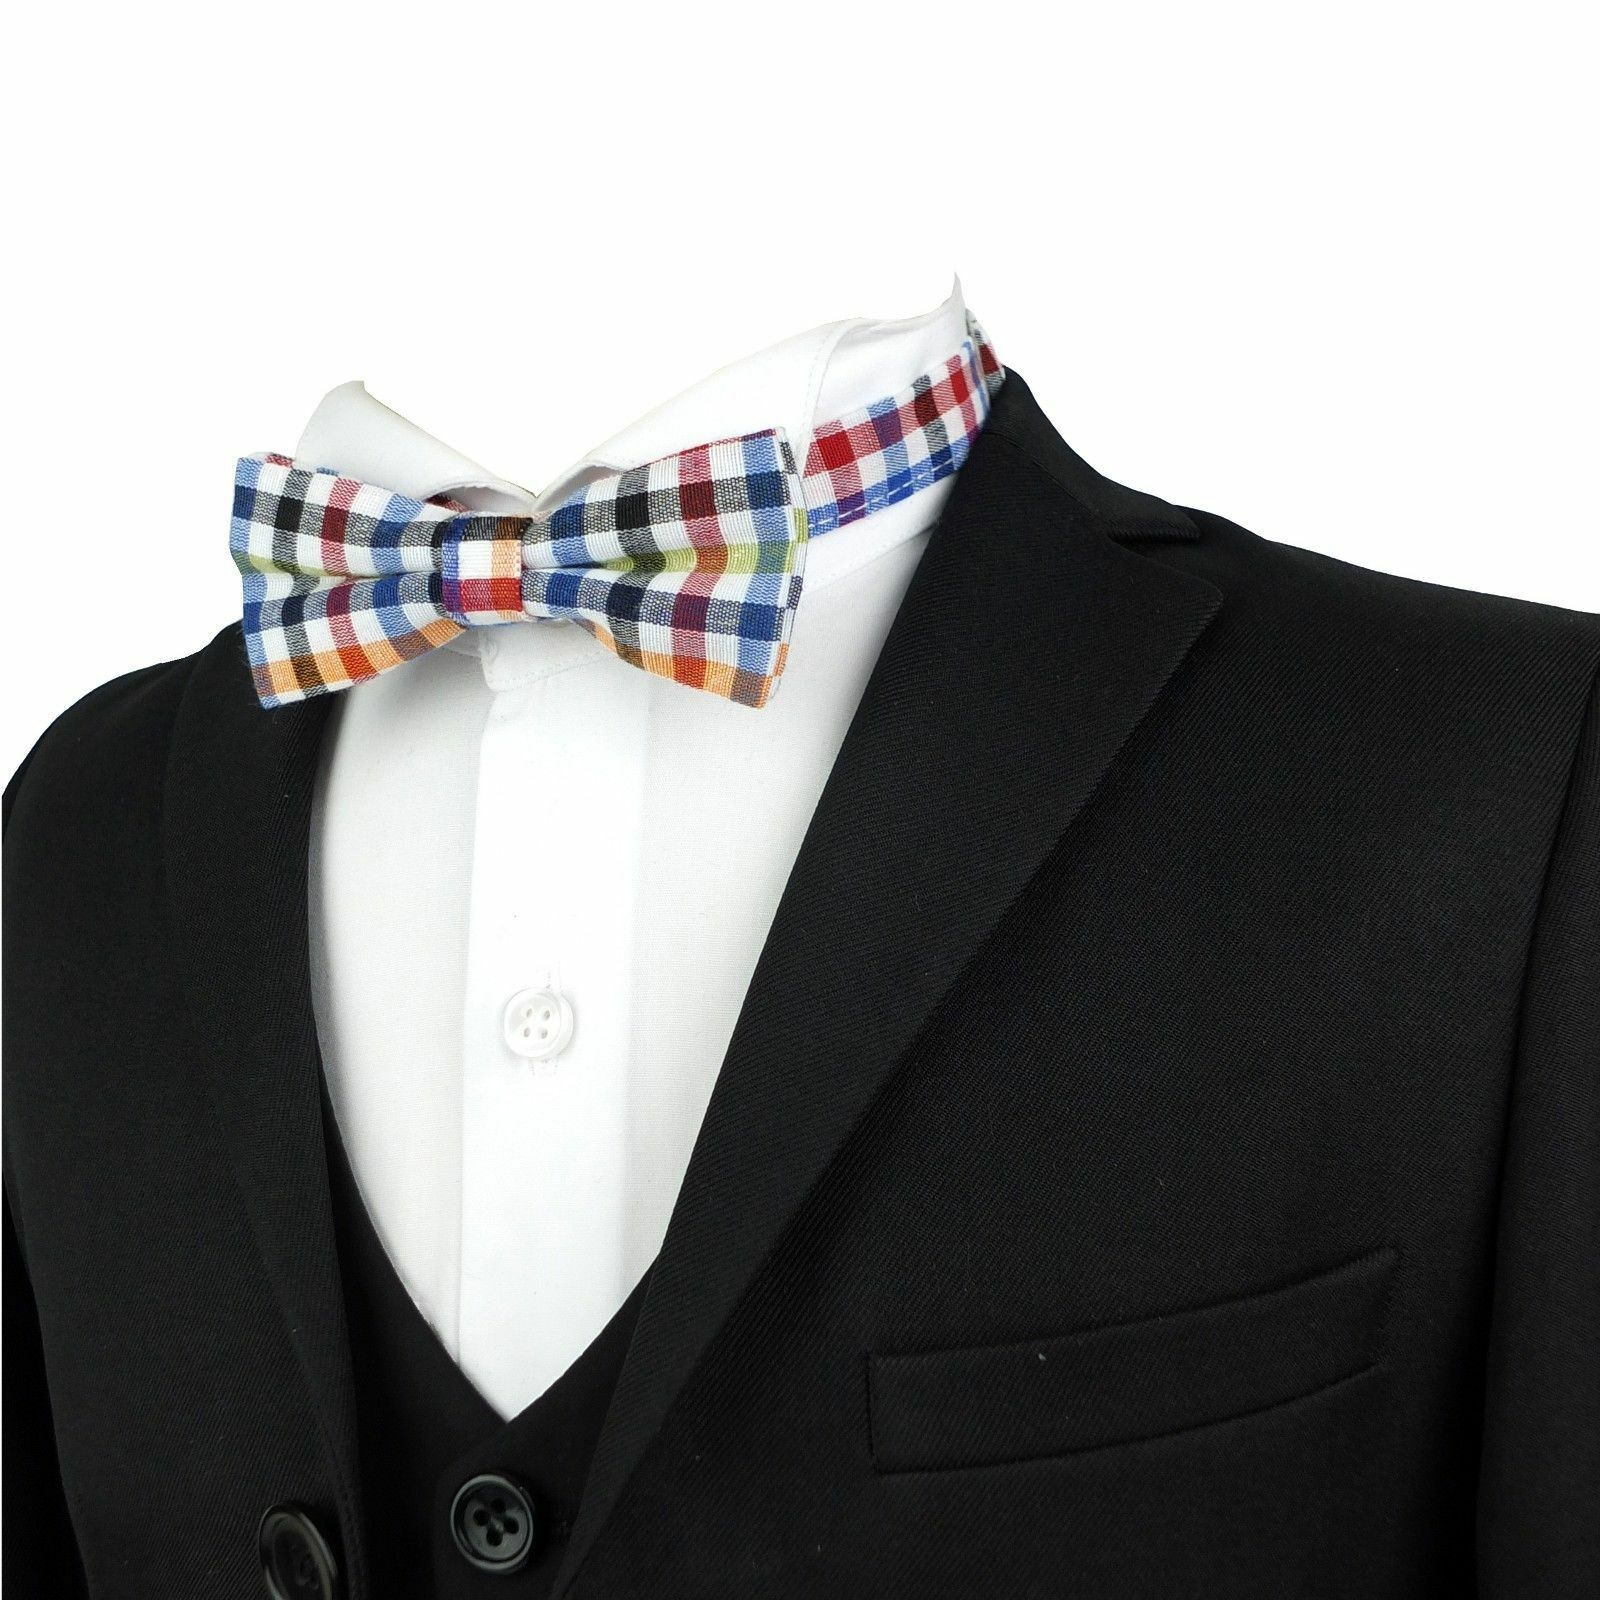 b79e80f9ce124 Details about Kids Fashion Check Bow Tie Boys Bow Tie Boys Red and Blue  Plaid Bow Tie